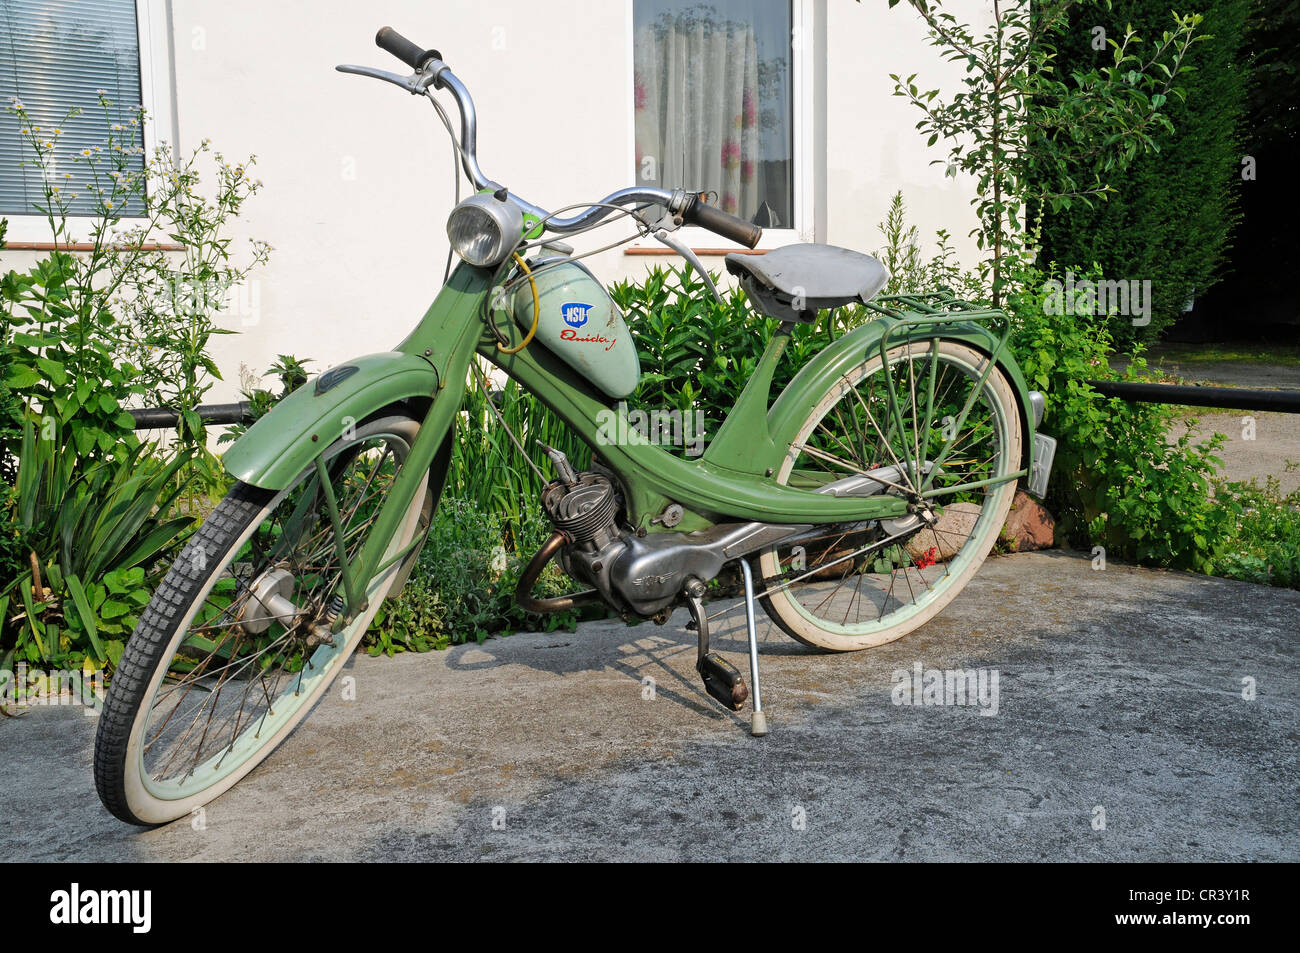 NSU Quickly moped, historic motor-assisted pedal cycle, autocycle, from the post-war era, Wirtschaftswunder era - Stock Image